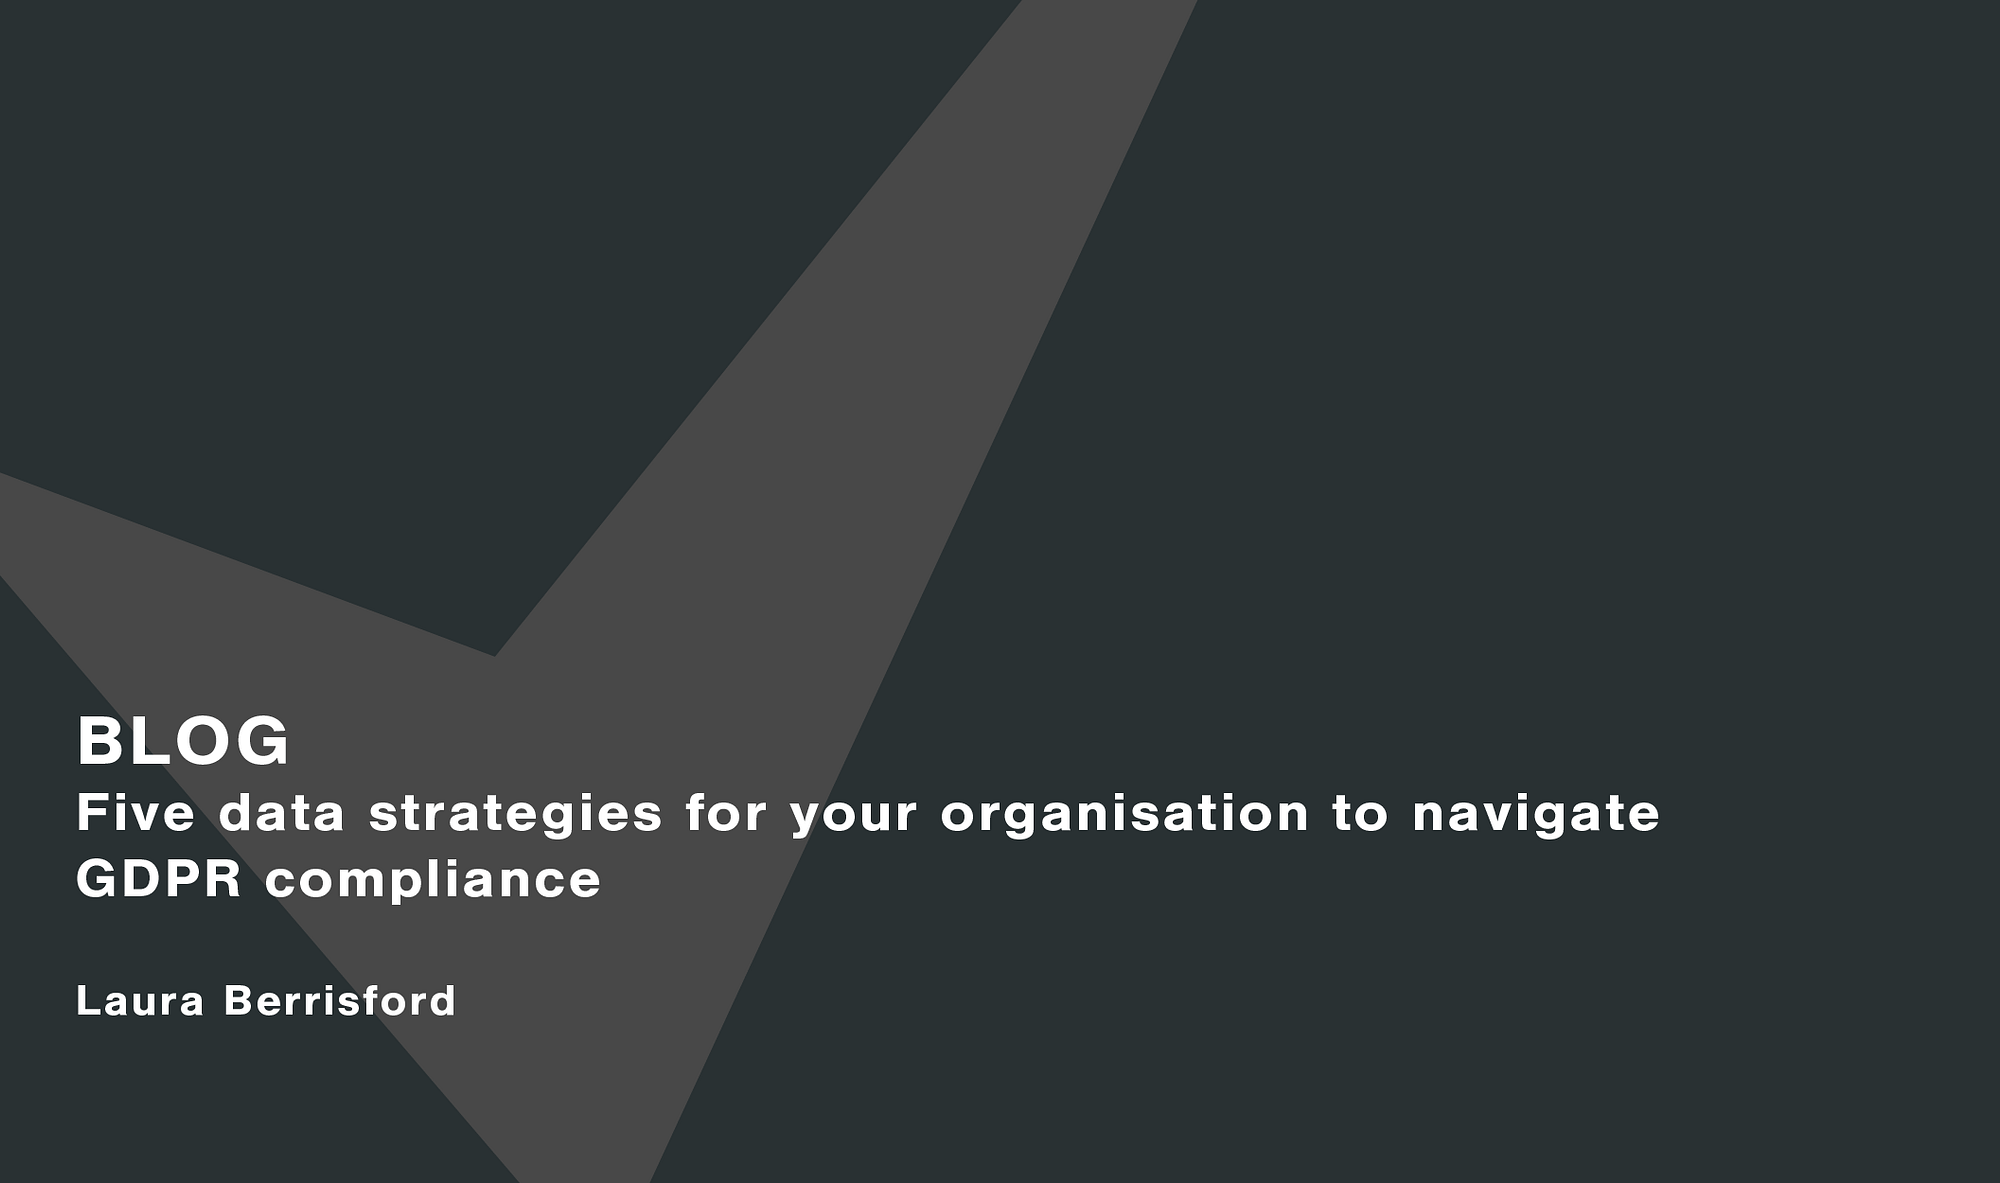 Five-data-strategies-for-your-organisation-to-navigate-GDPR-compliance